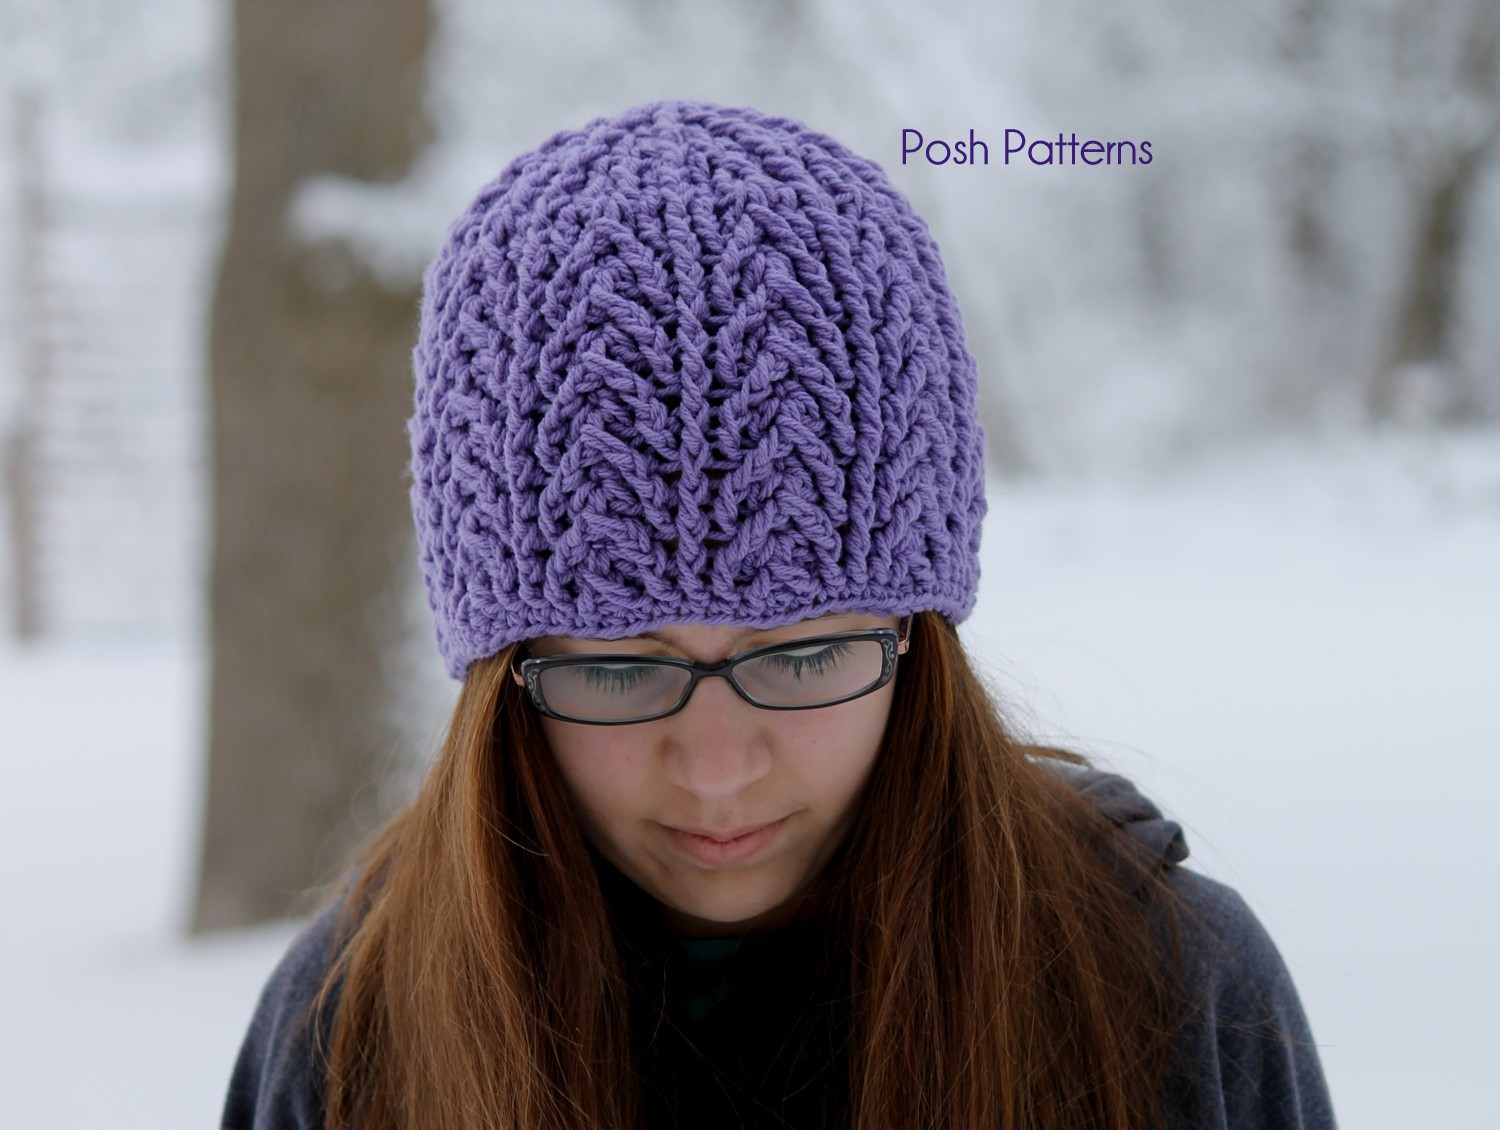 New Easy Crochet Hat Patterns for Men Easy Crochet Beanie Pattern Of Awesome A Variety Of Free Crochet Hat Patterns for Making Hats Easy Crochet Beanie Pattern